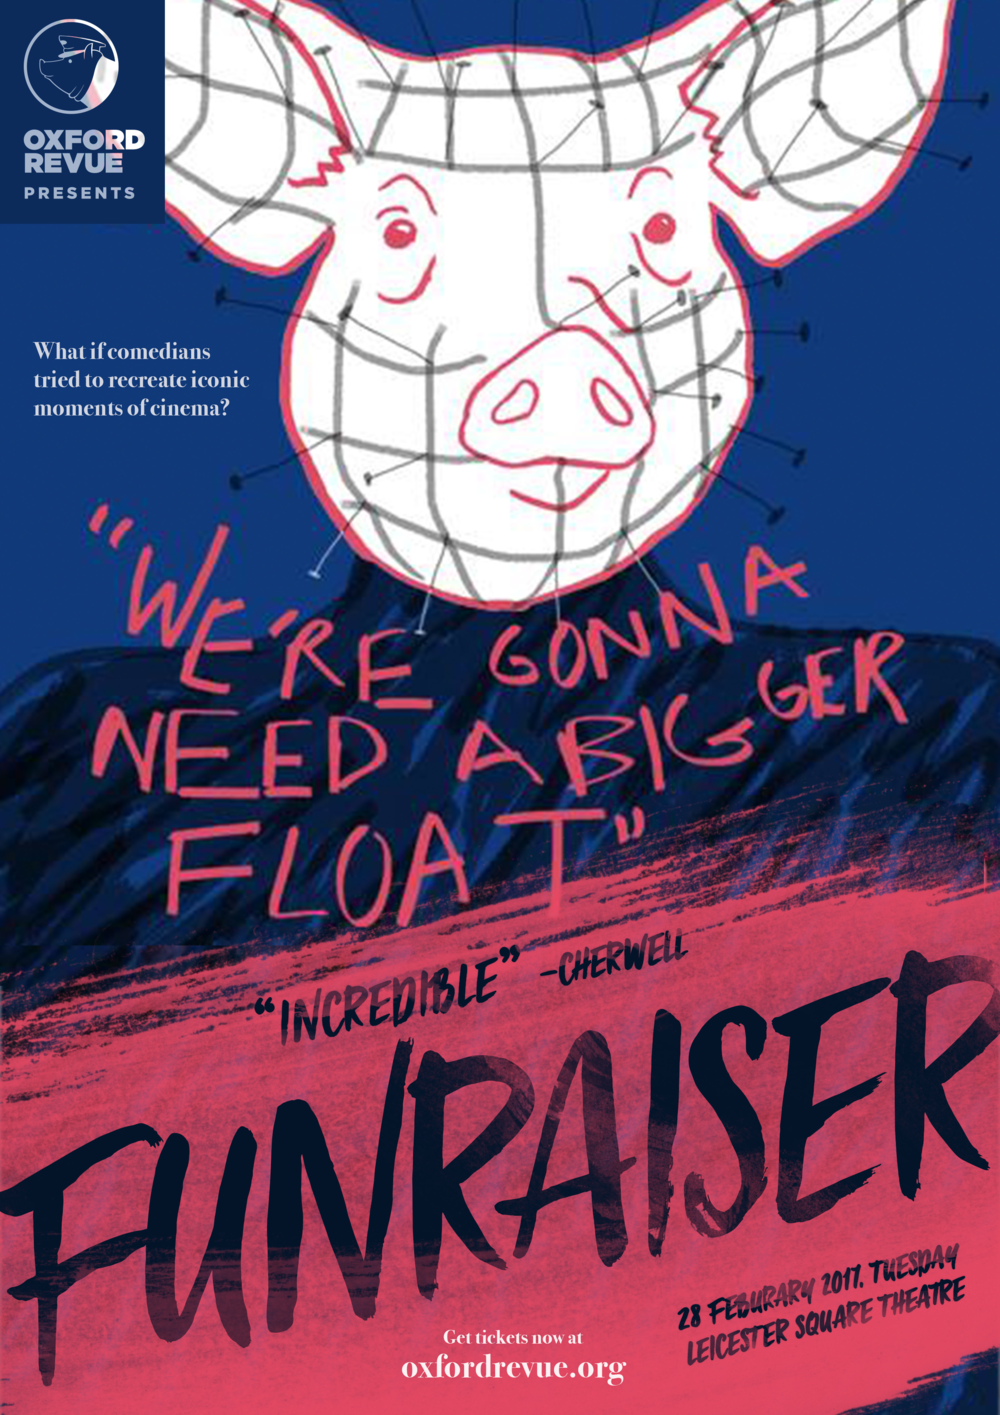 funraiser-poster-a4.png